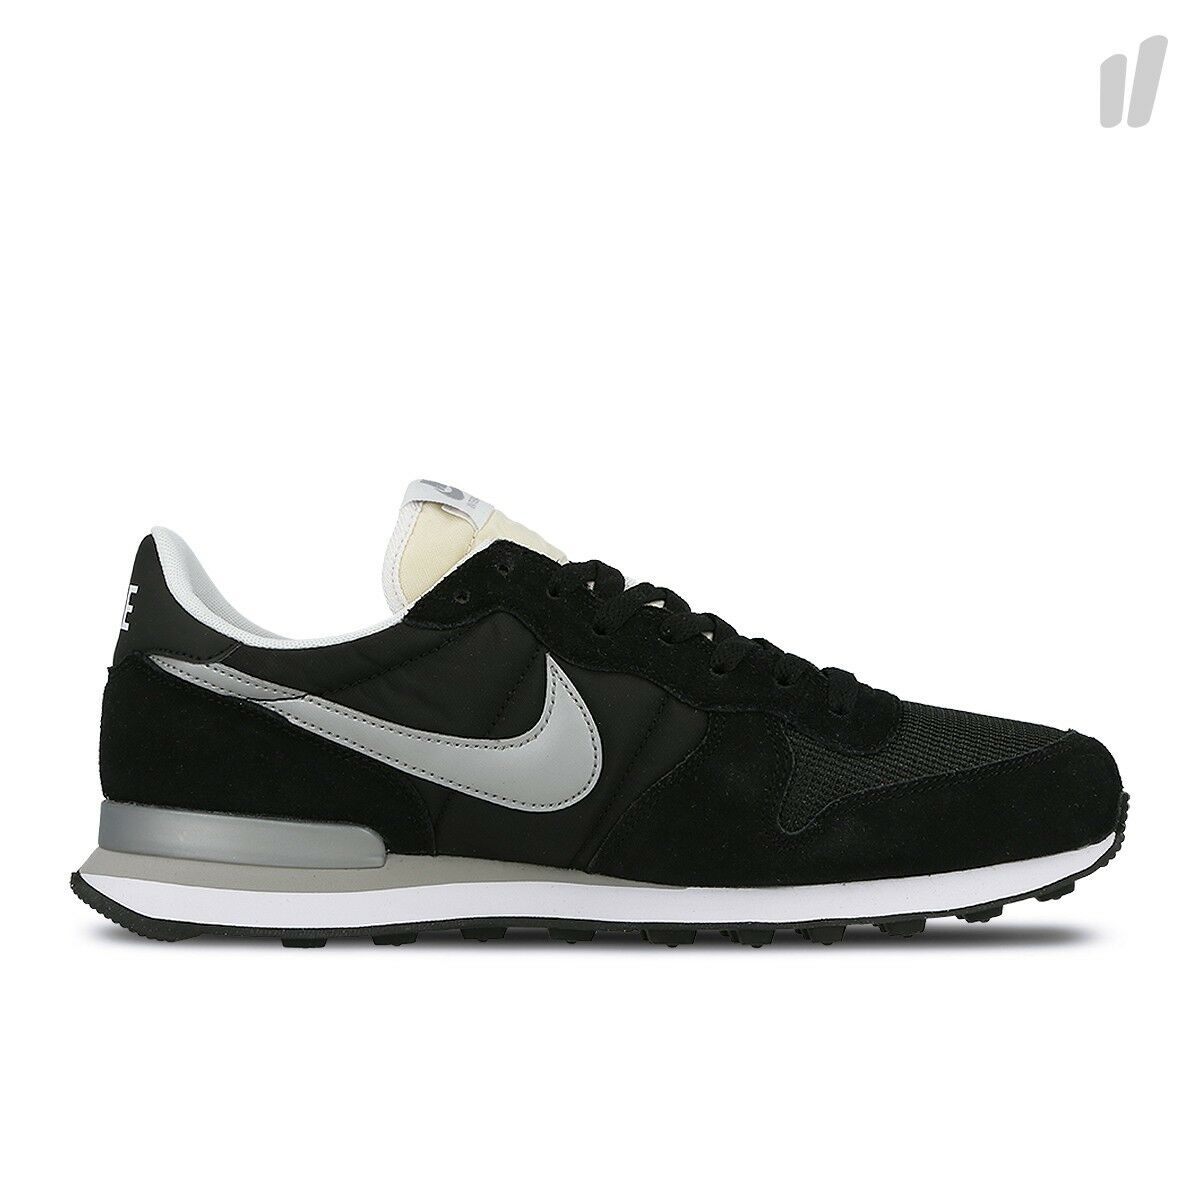 Nike Internationalist Black Silver Size 7.5. 828041-003. presto air max 2017